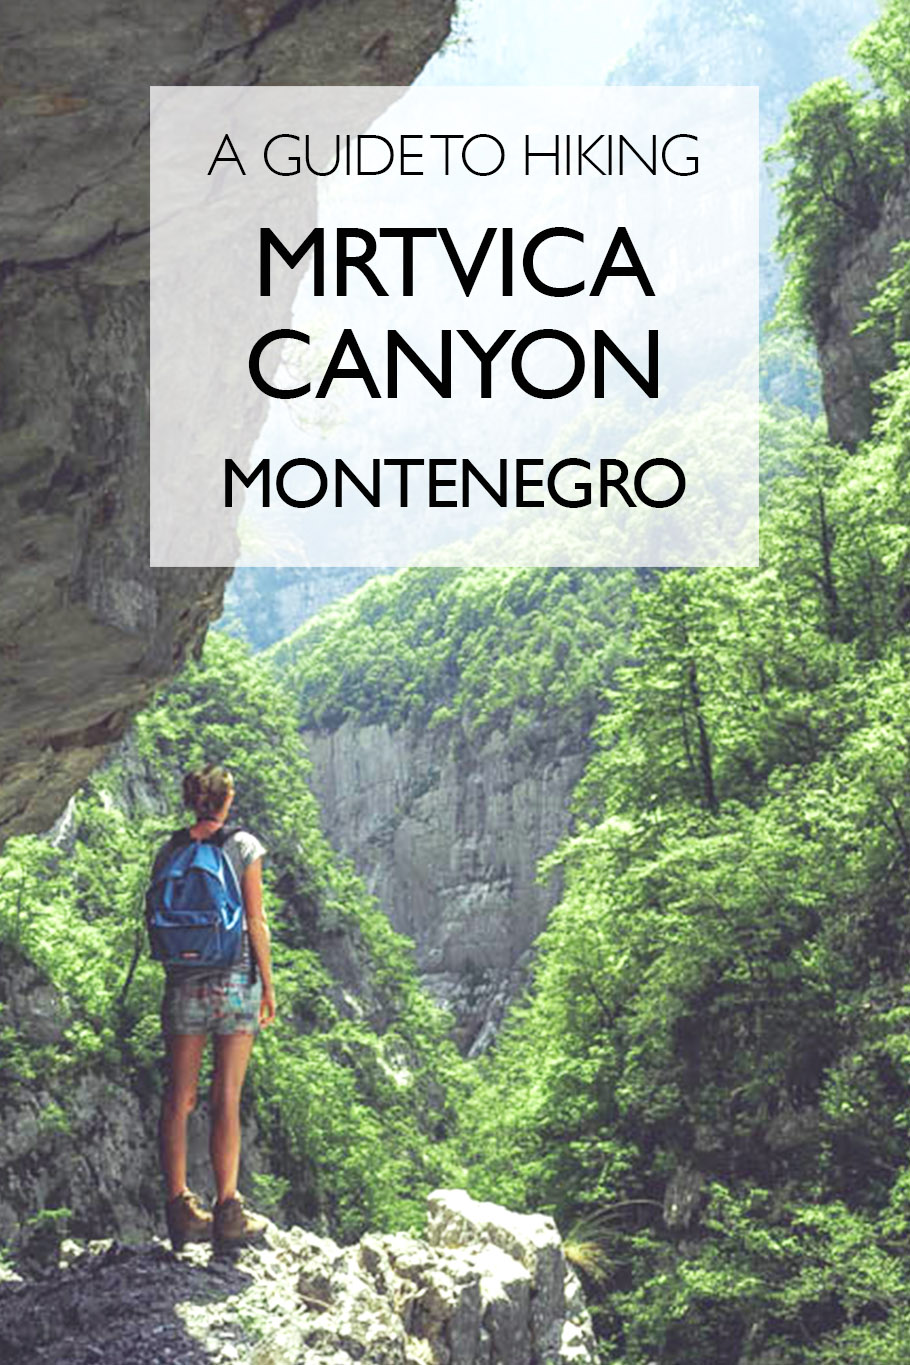 A Guide To Hiking Mrtvica Canyon | Montenegro | Eastern Europe